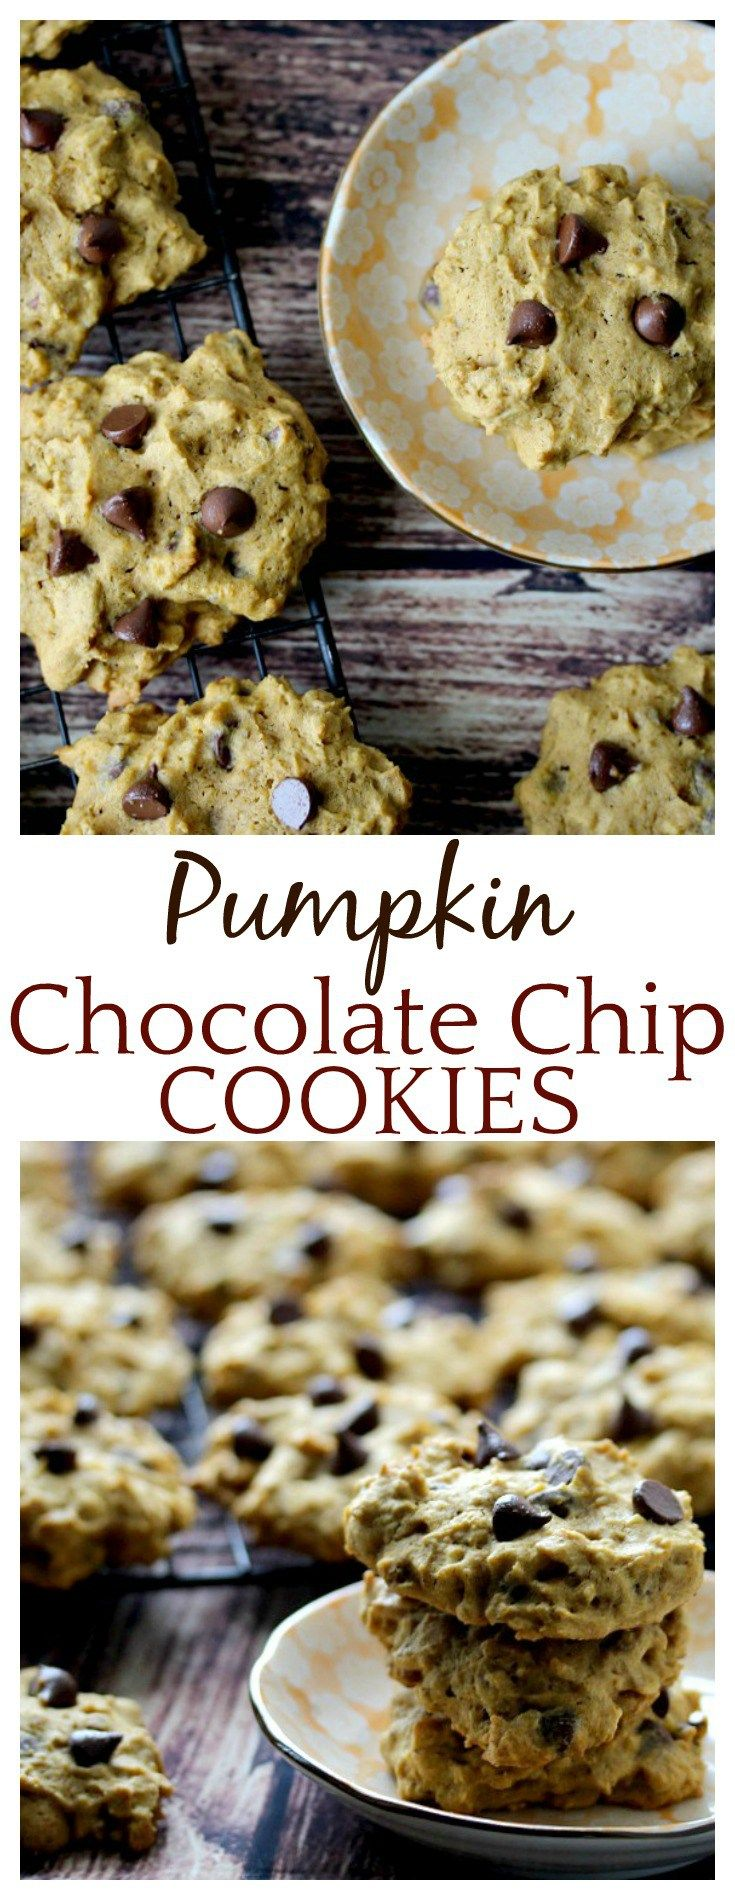 One bite and I was addicted to these Pumpkin Chocolate Chip Cookies! They stayed moist for days! Absolutely perfect!